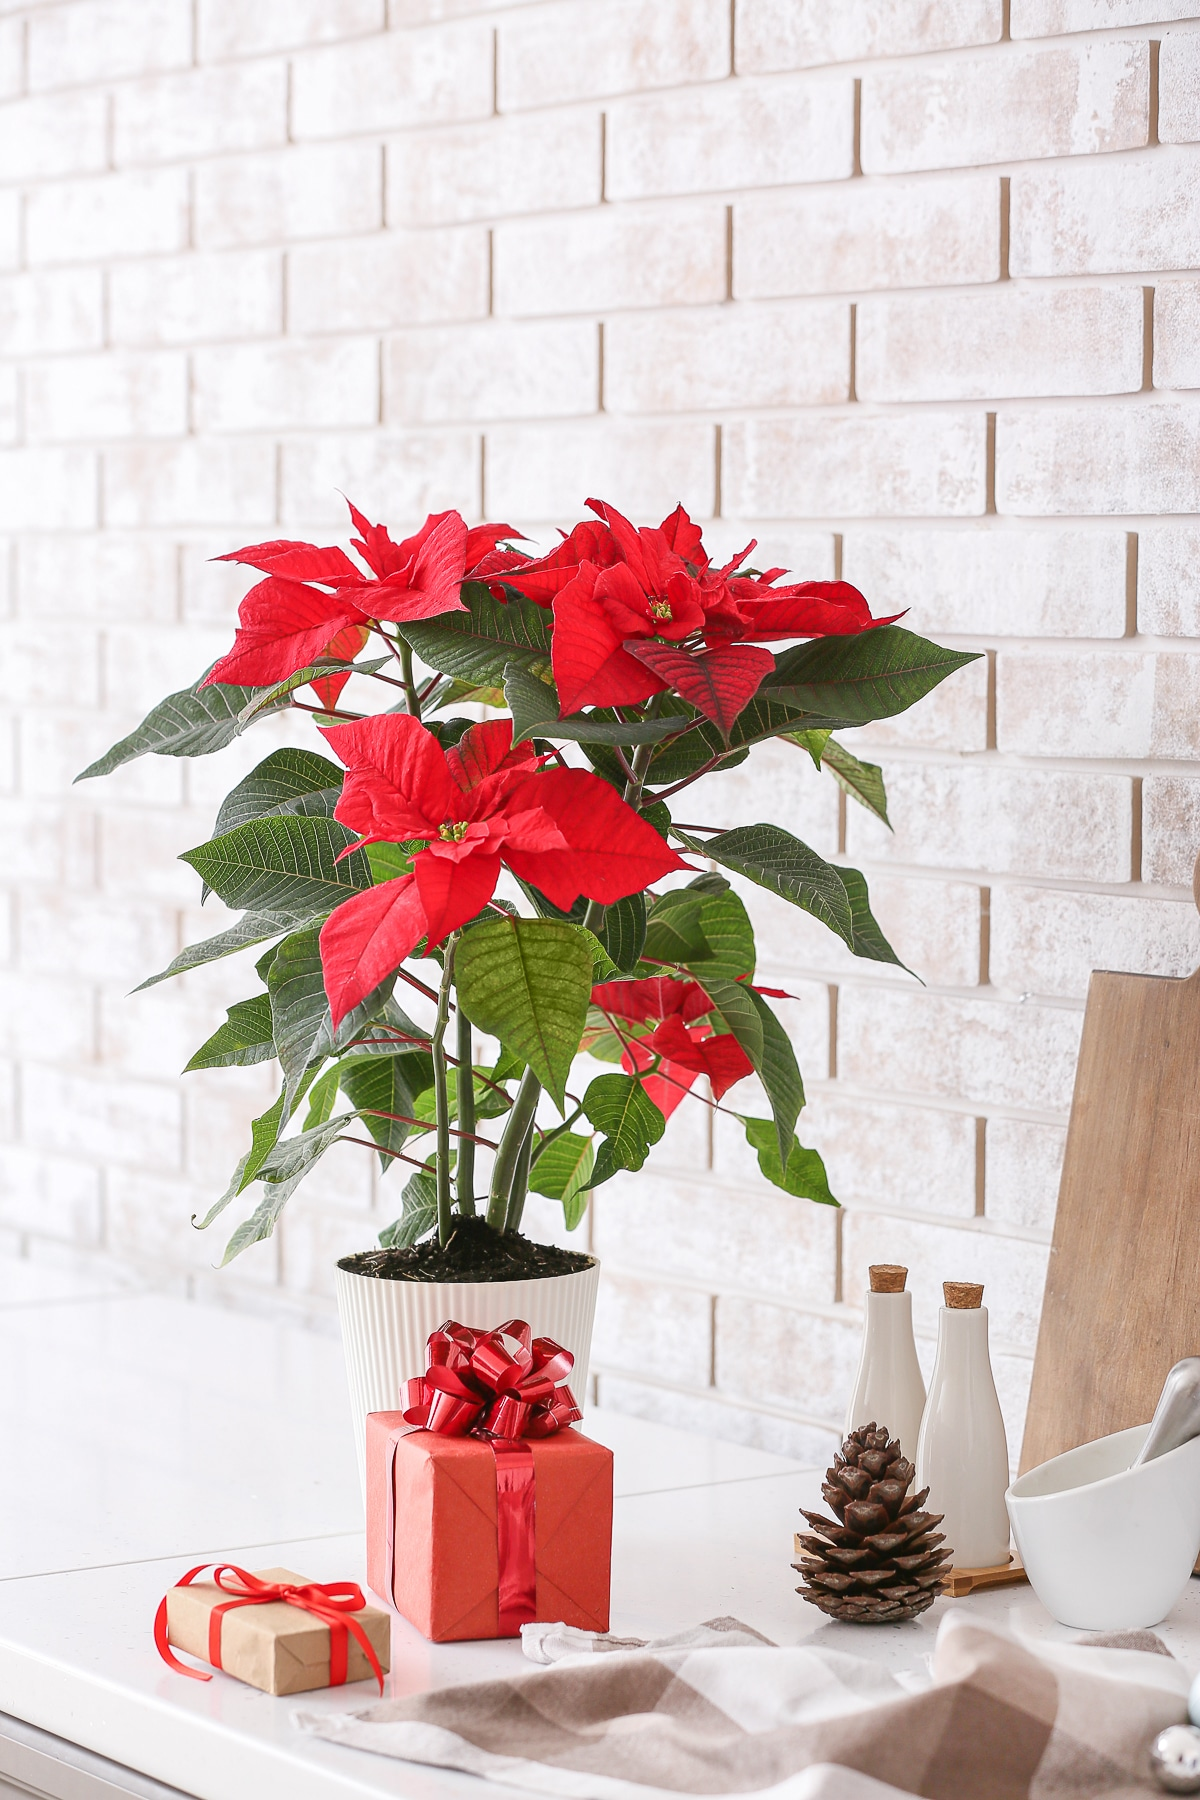 Bright red Christmas plant poinsettia on kitchen table against a white brick wall.